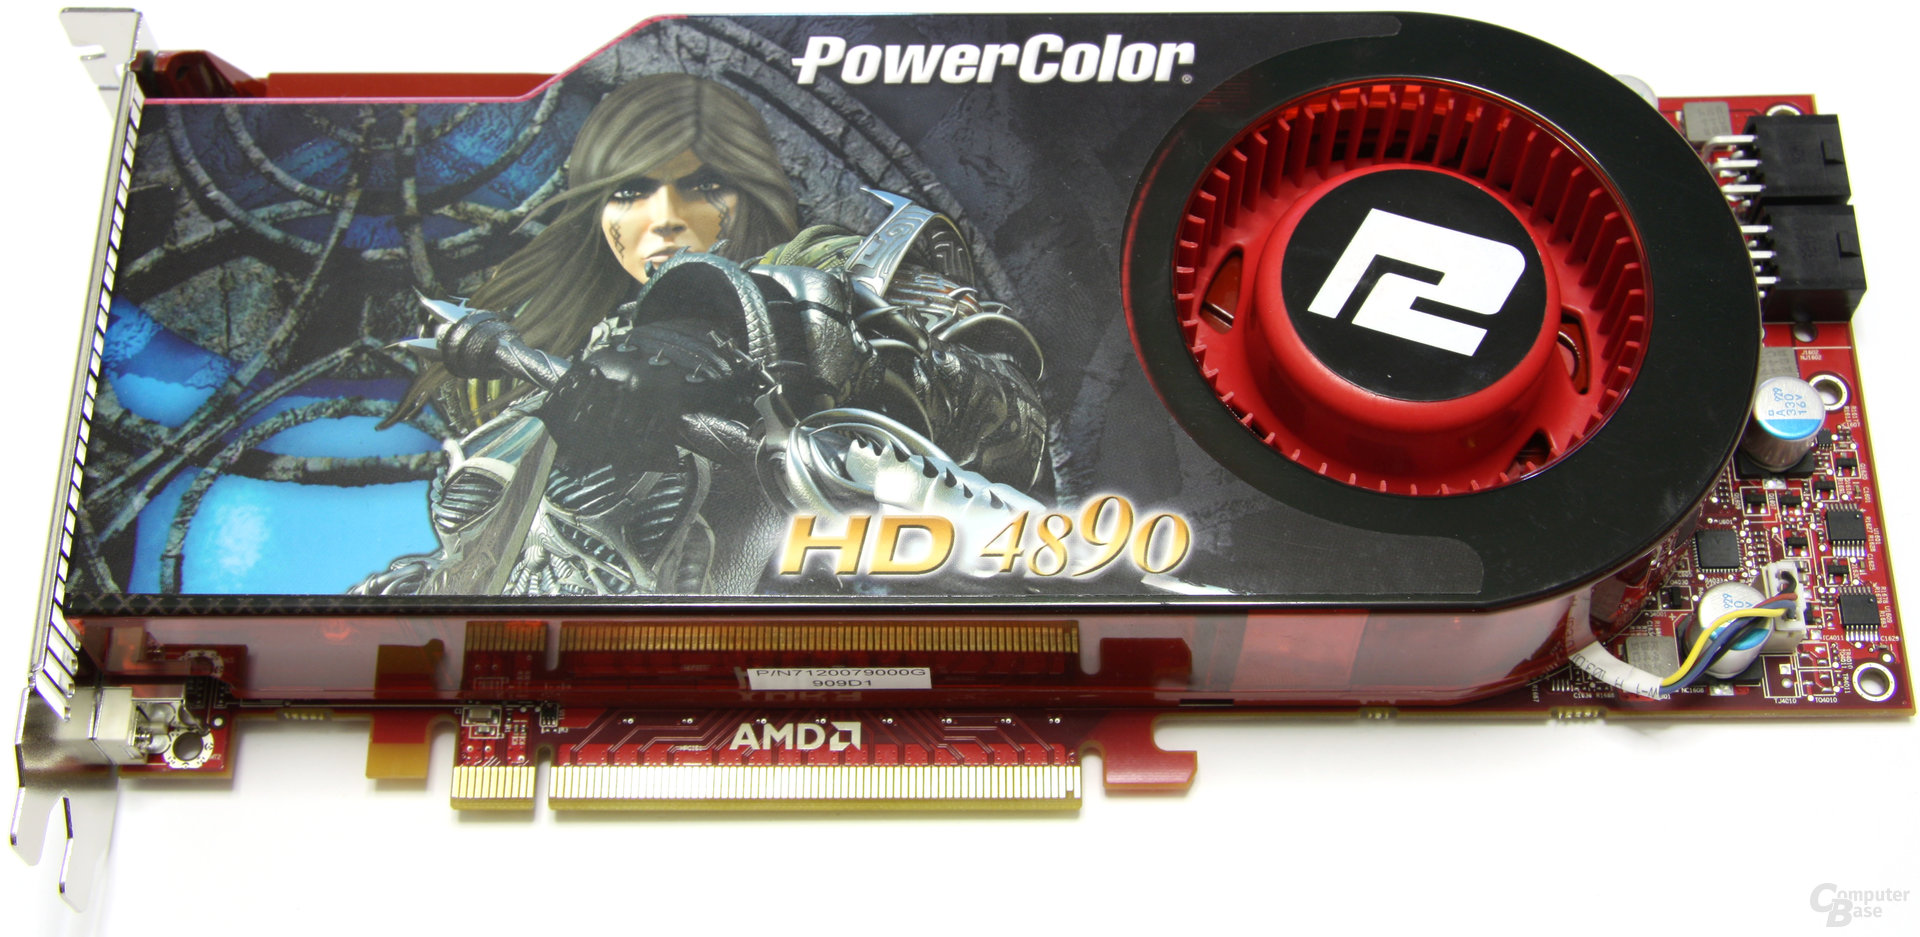 PowerColorRadeon HD 4890